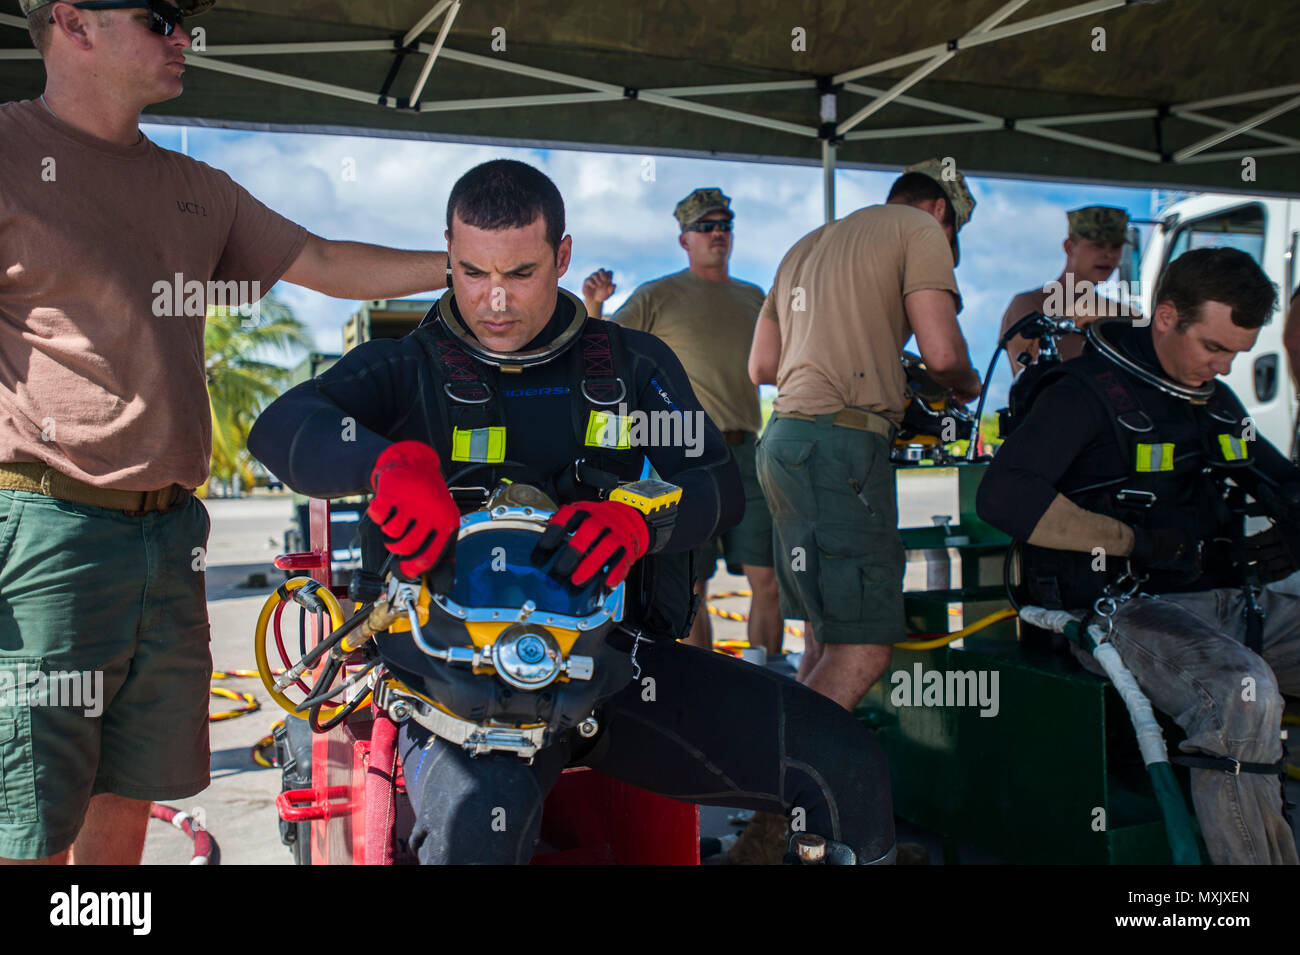 Chief Petty Officer Dan Luberto, center, assigned to Underwater Construction Team (UCT) 2's Construction Dive Detachment Bravo (CDDB), performs surface checks on his KM-37 diving helmet in Diego Garcia, British Indian Ocean Territory, Nov. 10, 2016.  CDDB is performing precision underwater demolition and light salvage to remove obstructions from Diego Garcia's deep draft wharf. CDDB is on the third stop of their deployment, where they are conducting inspection, maintenance, and repair of various underwater and waterfront facilities while under Commander, Task Force (CTF) 75, the primary expedi Stock Photo